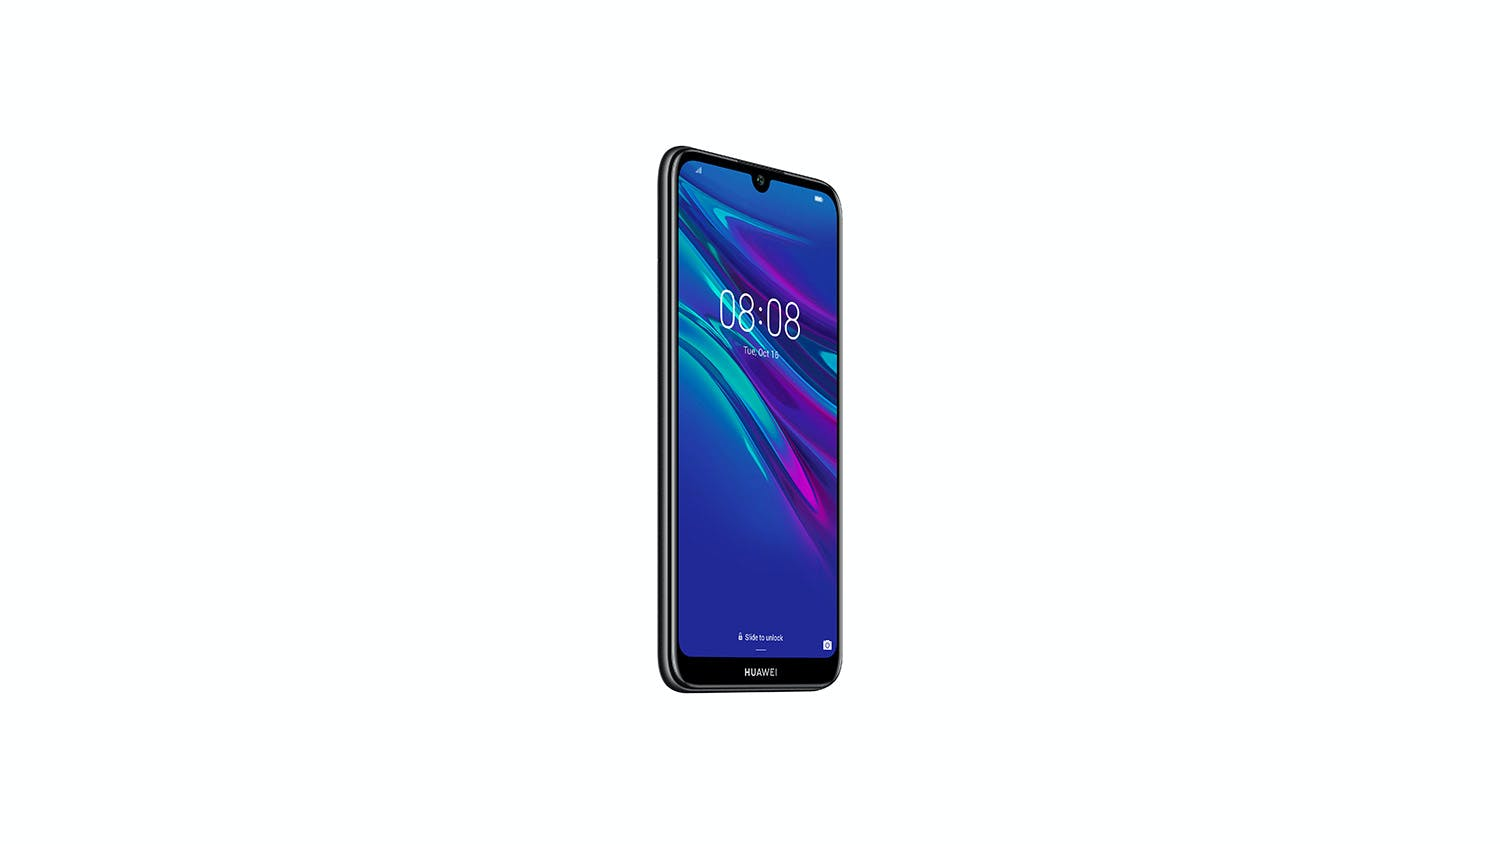 2degrees Huawei Y6 Pro Smartphone